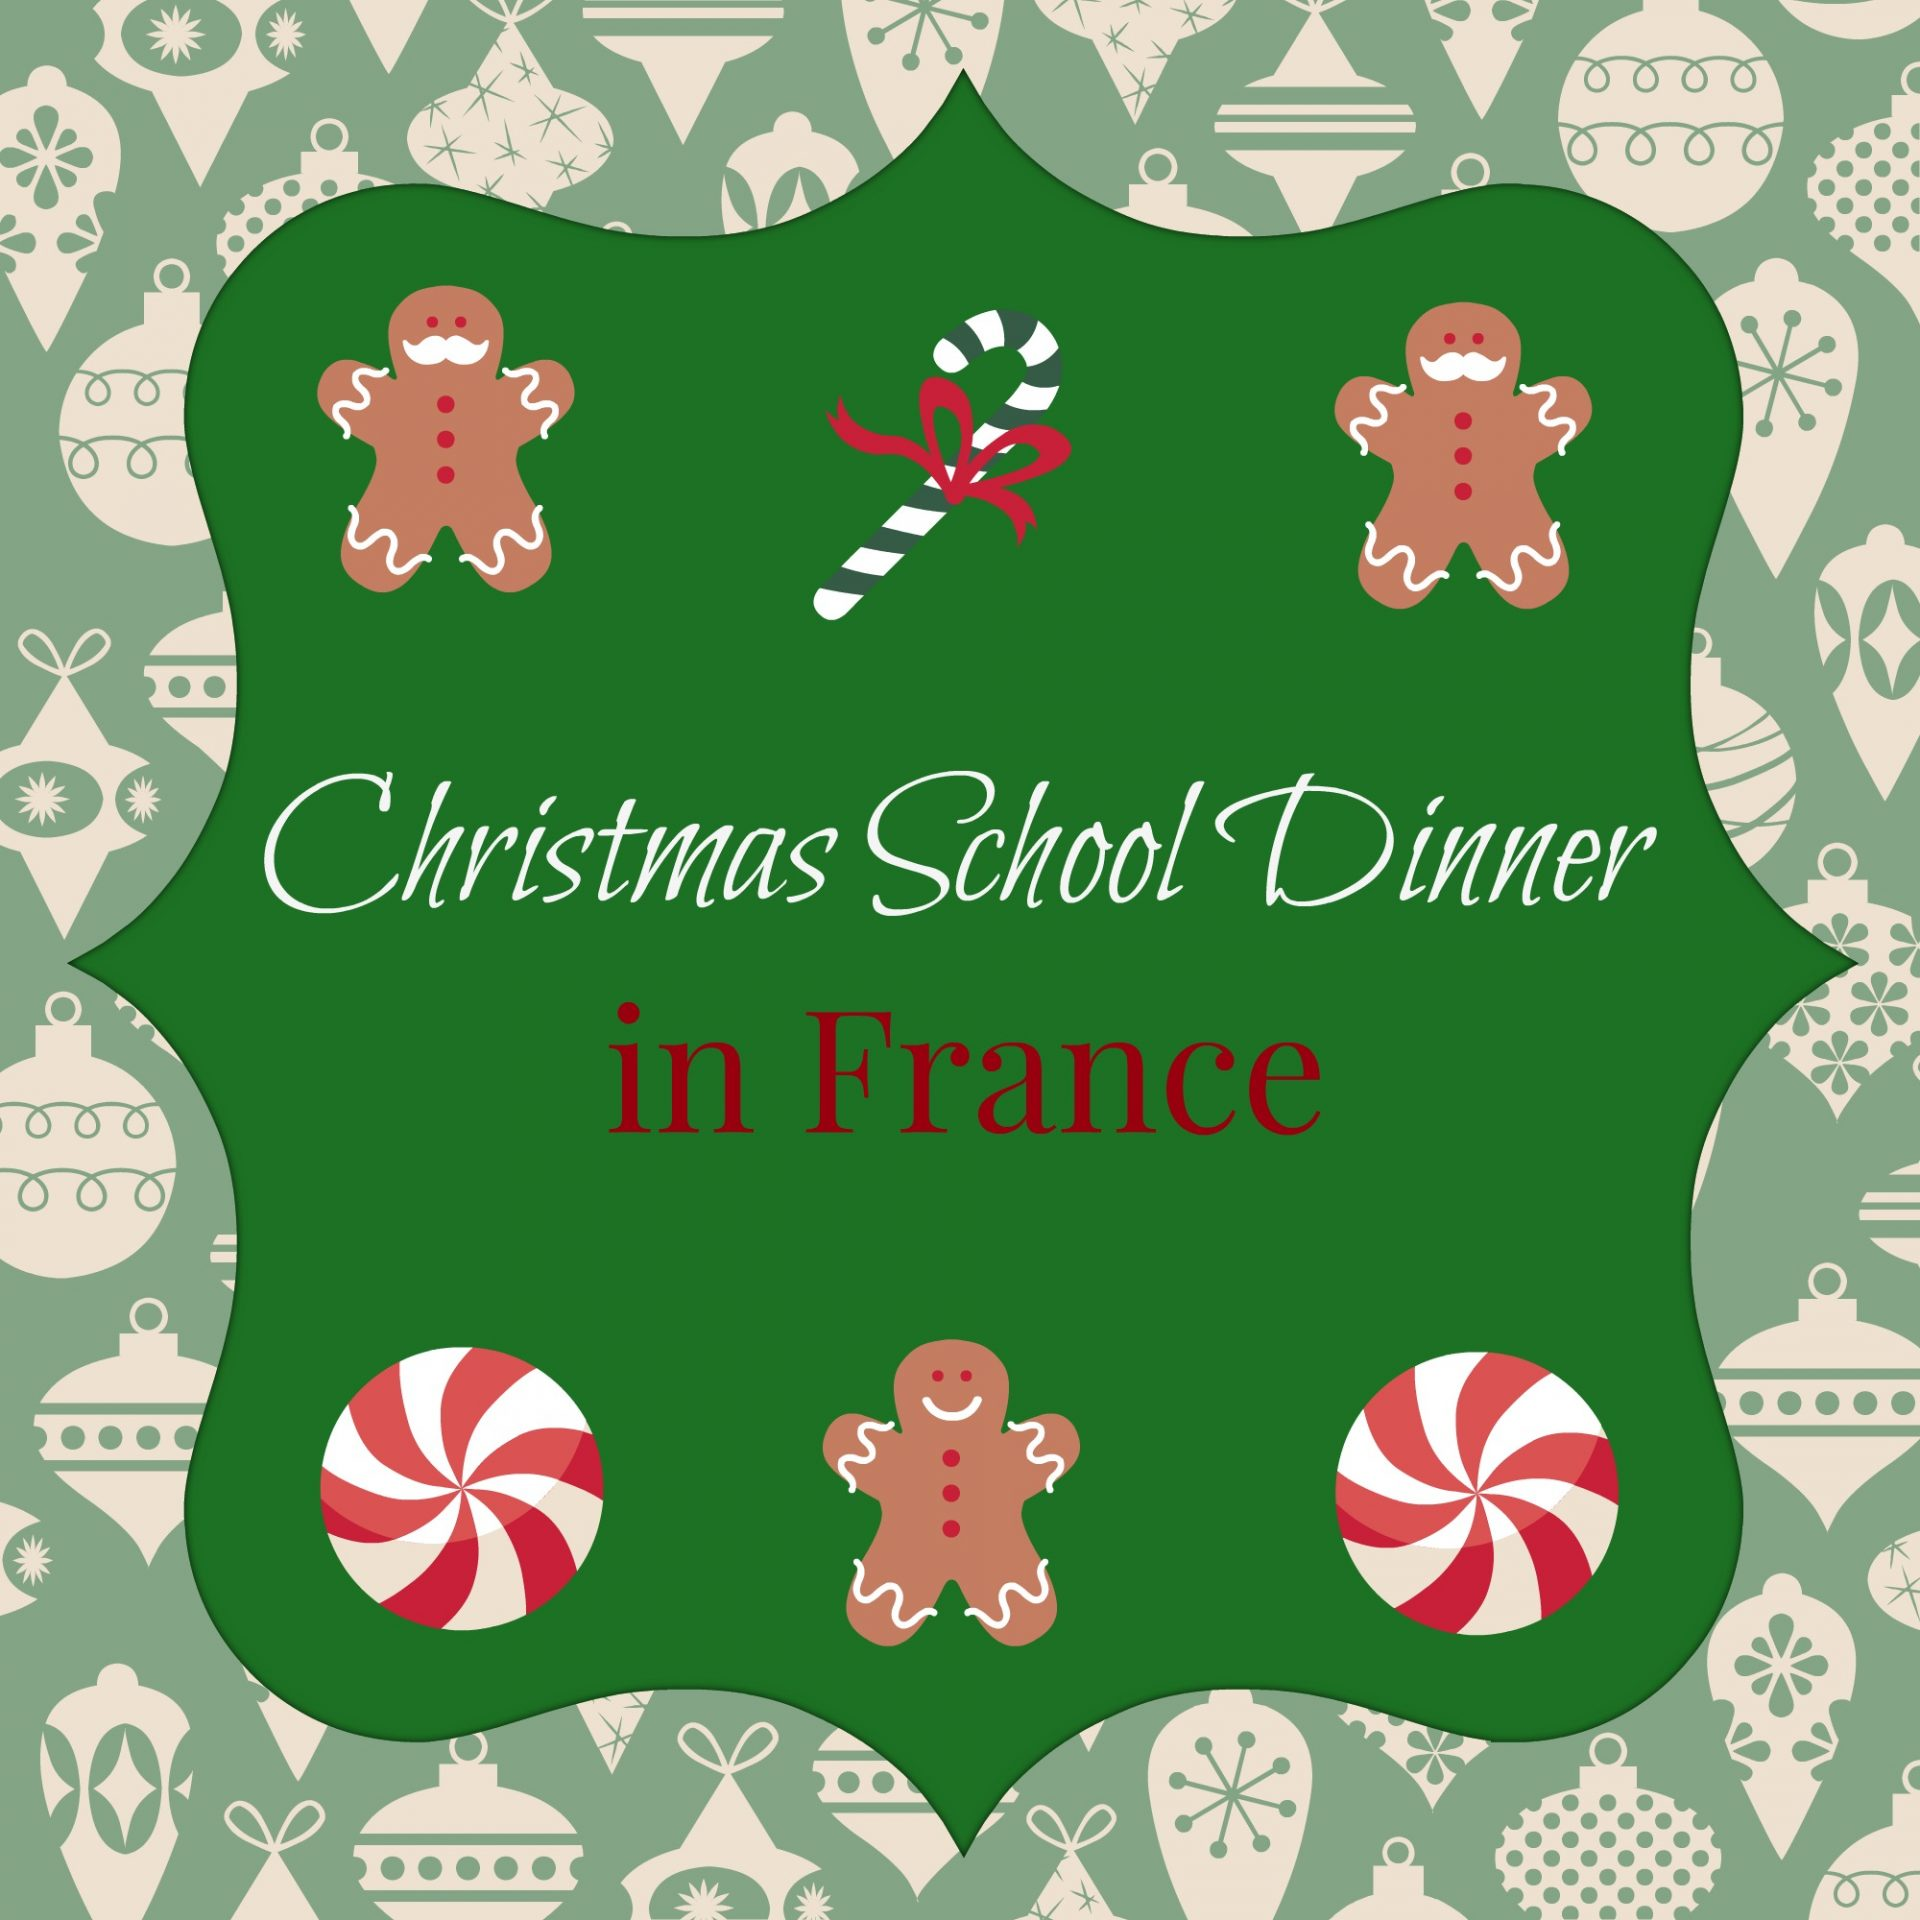 School Christmas Dinner, in France